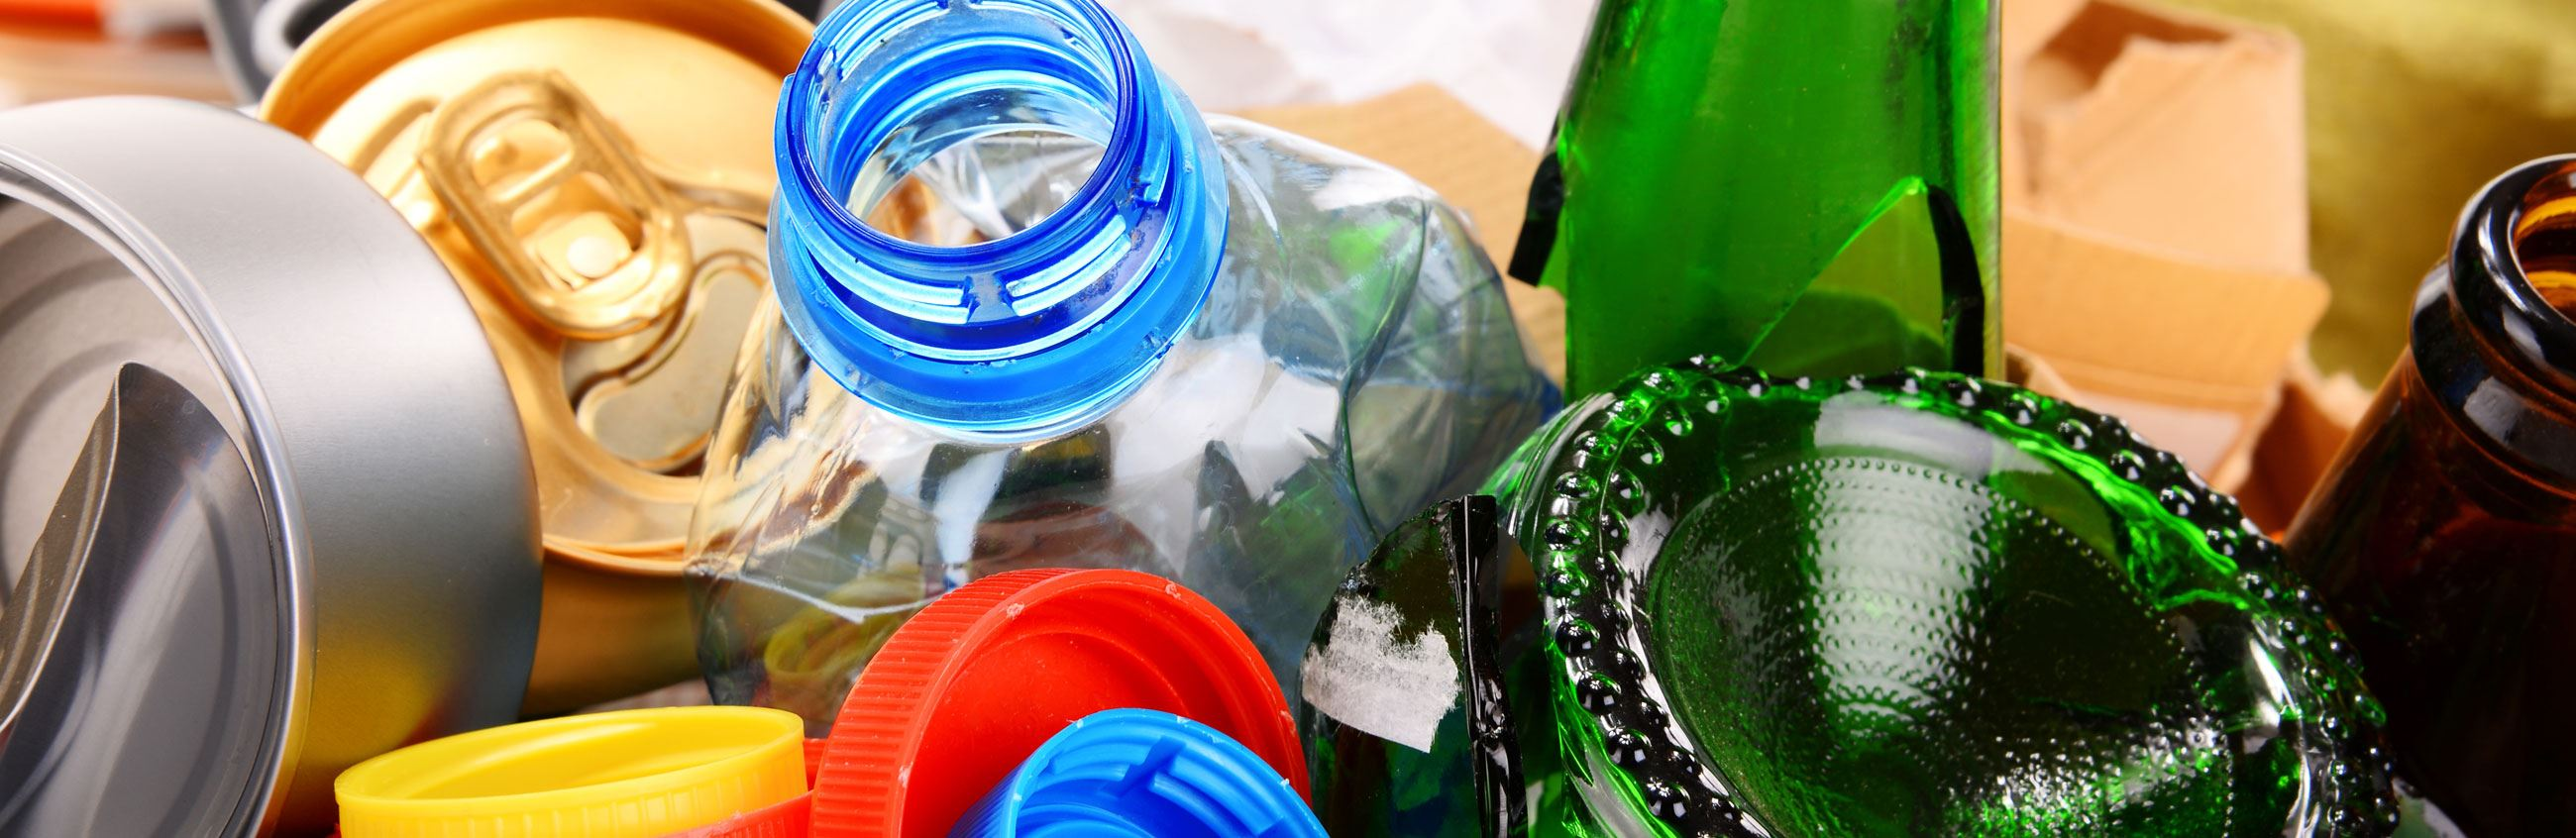 Assortment of recyclable materials